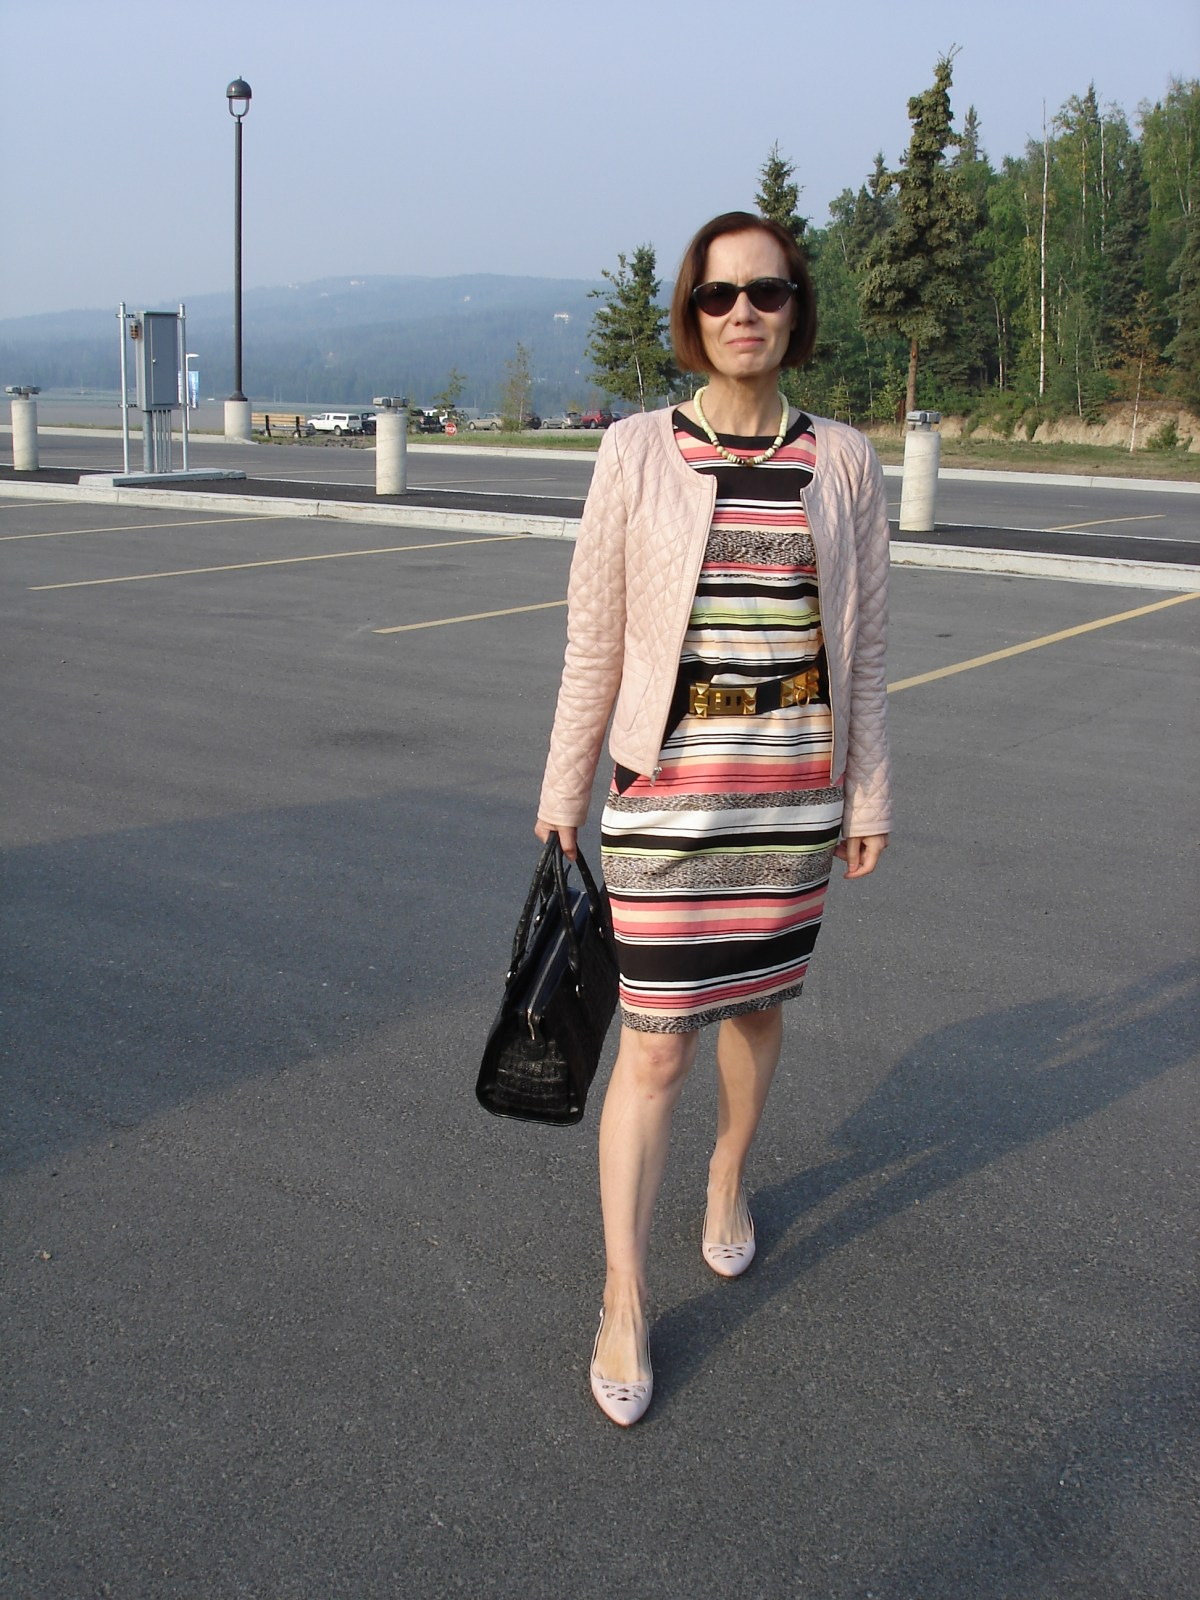 #fashionover50 woman in striped dress